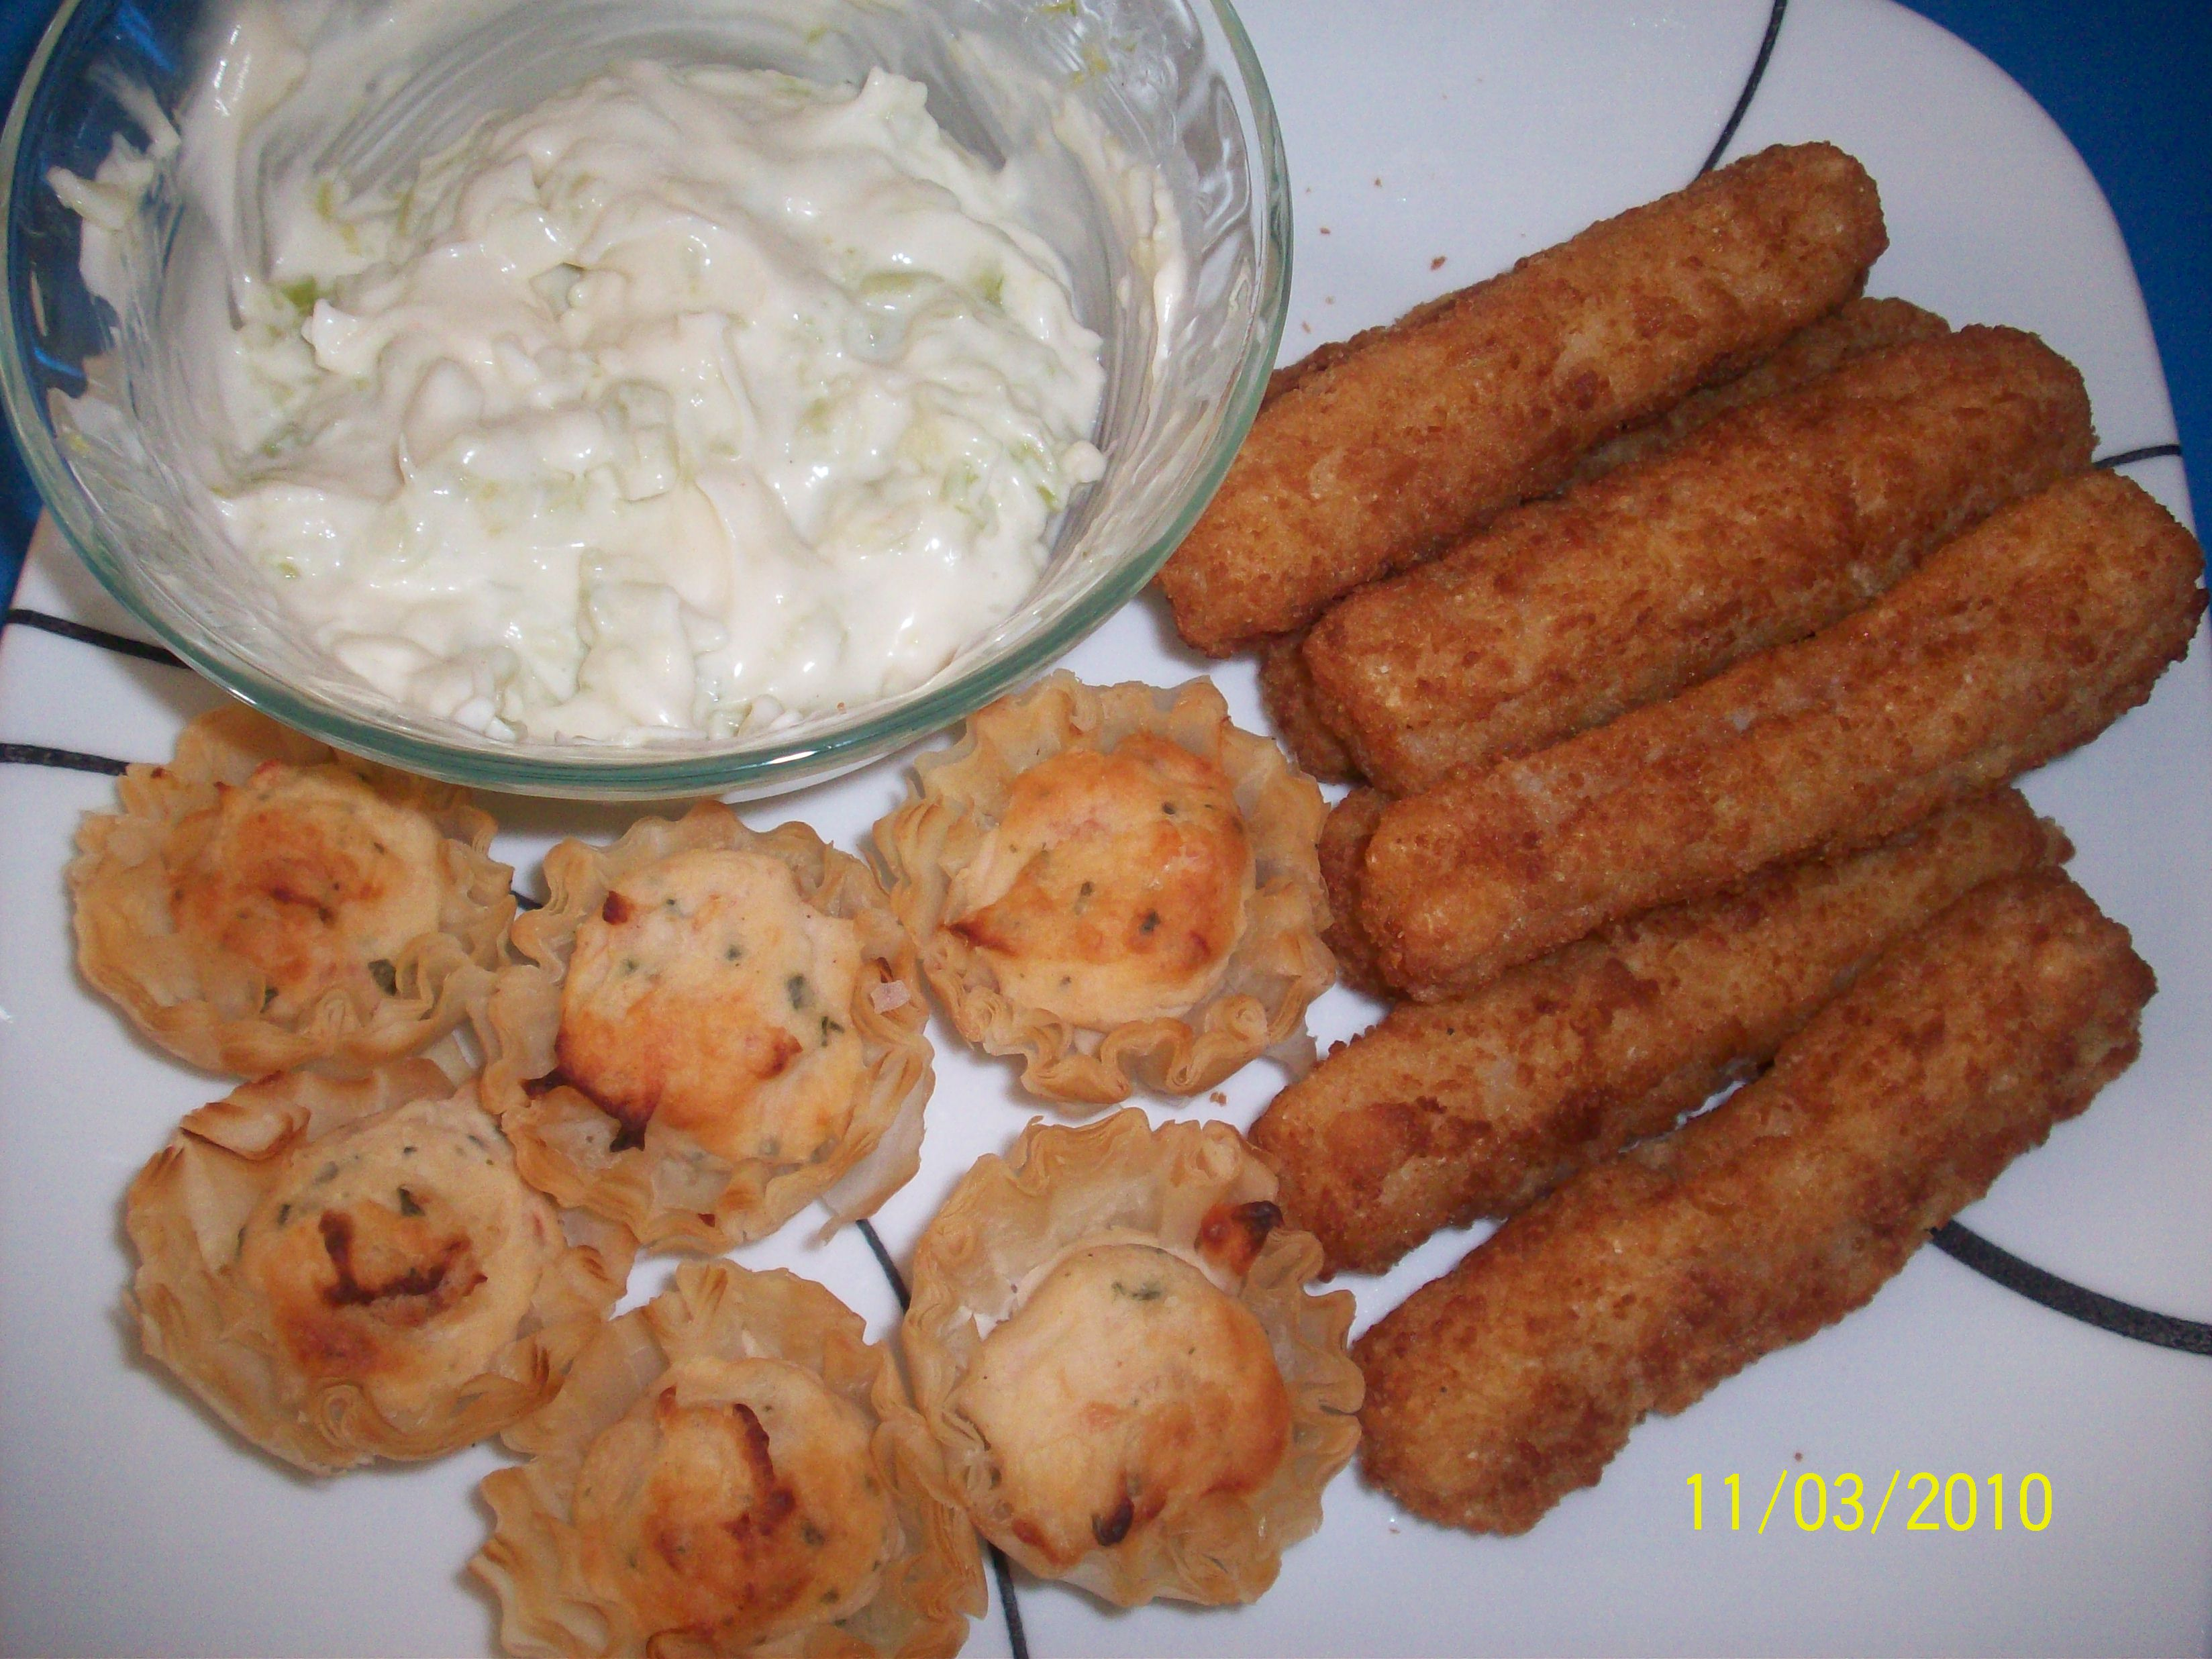 http://foodloader.net/cutie_2010-03-11_Phyllo_Tart_and_Fish_Sticks.jpg